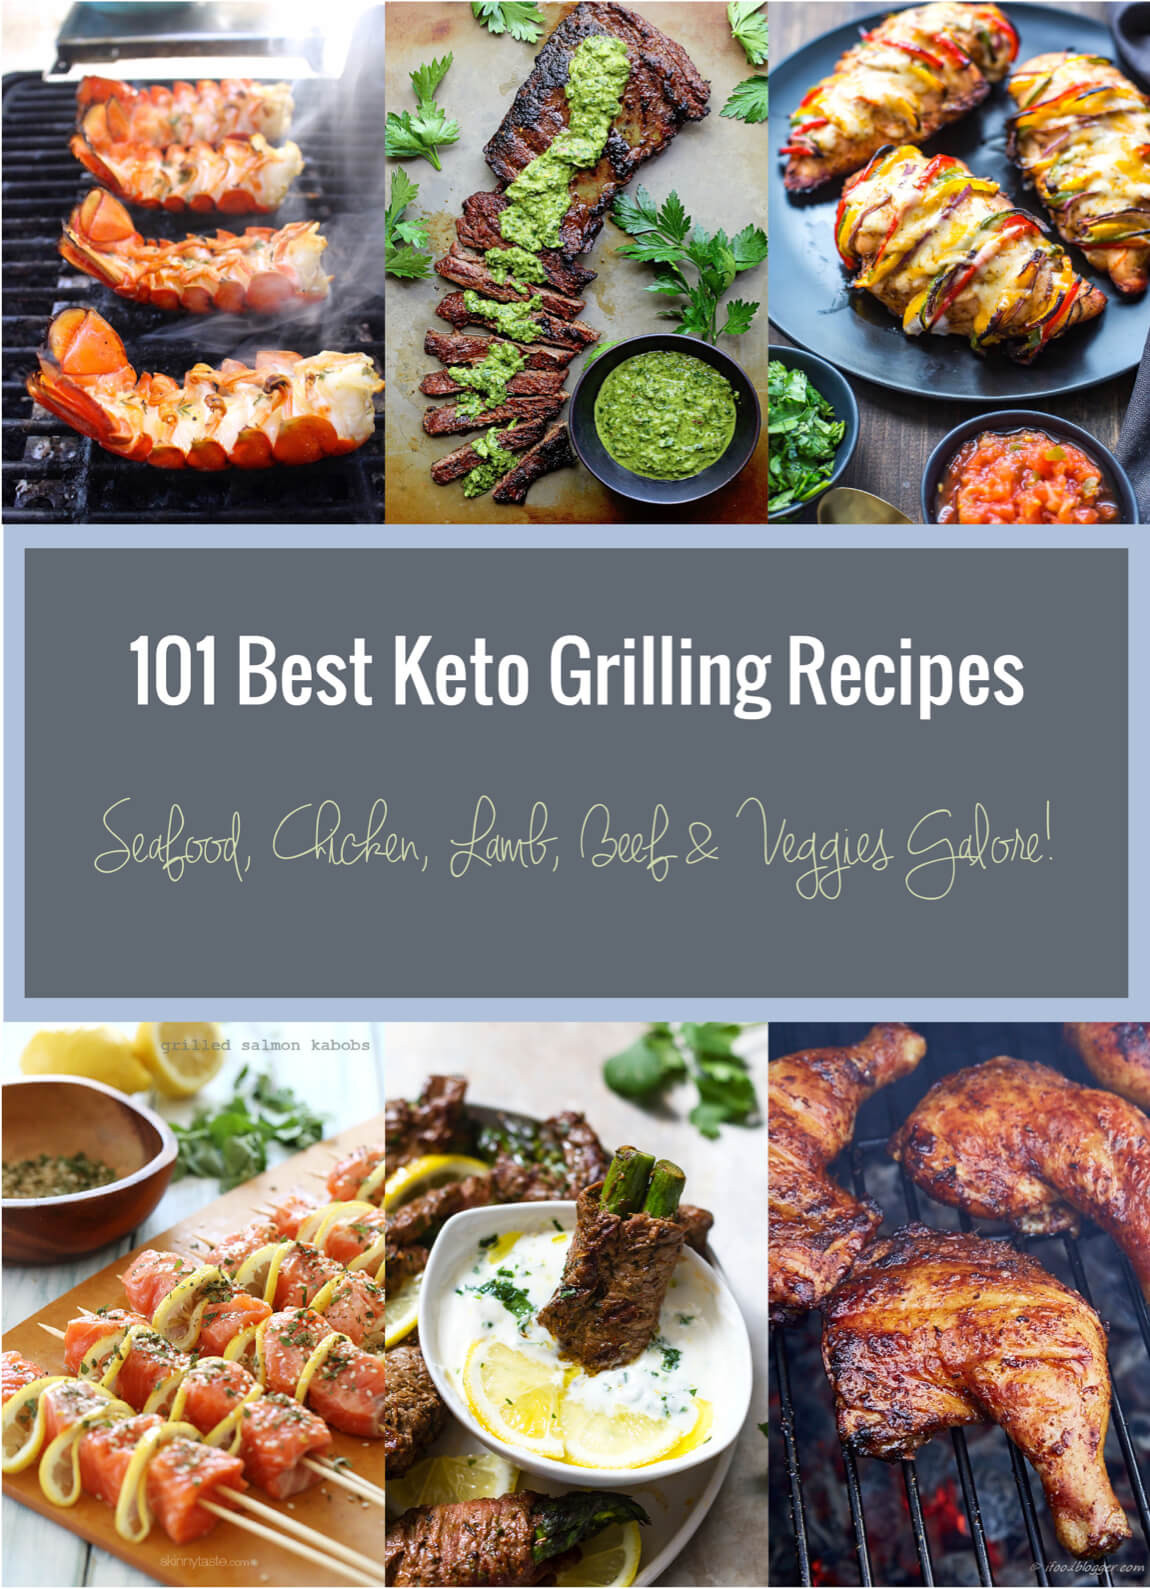 101 Healthy Low Carb Recipes  101 Best Keto Grilling Recipes Low Carb